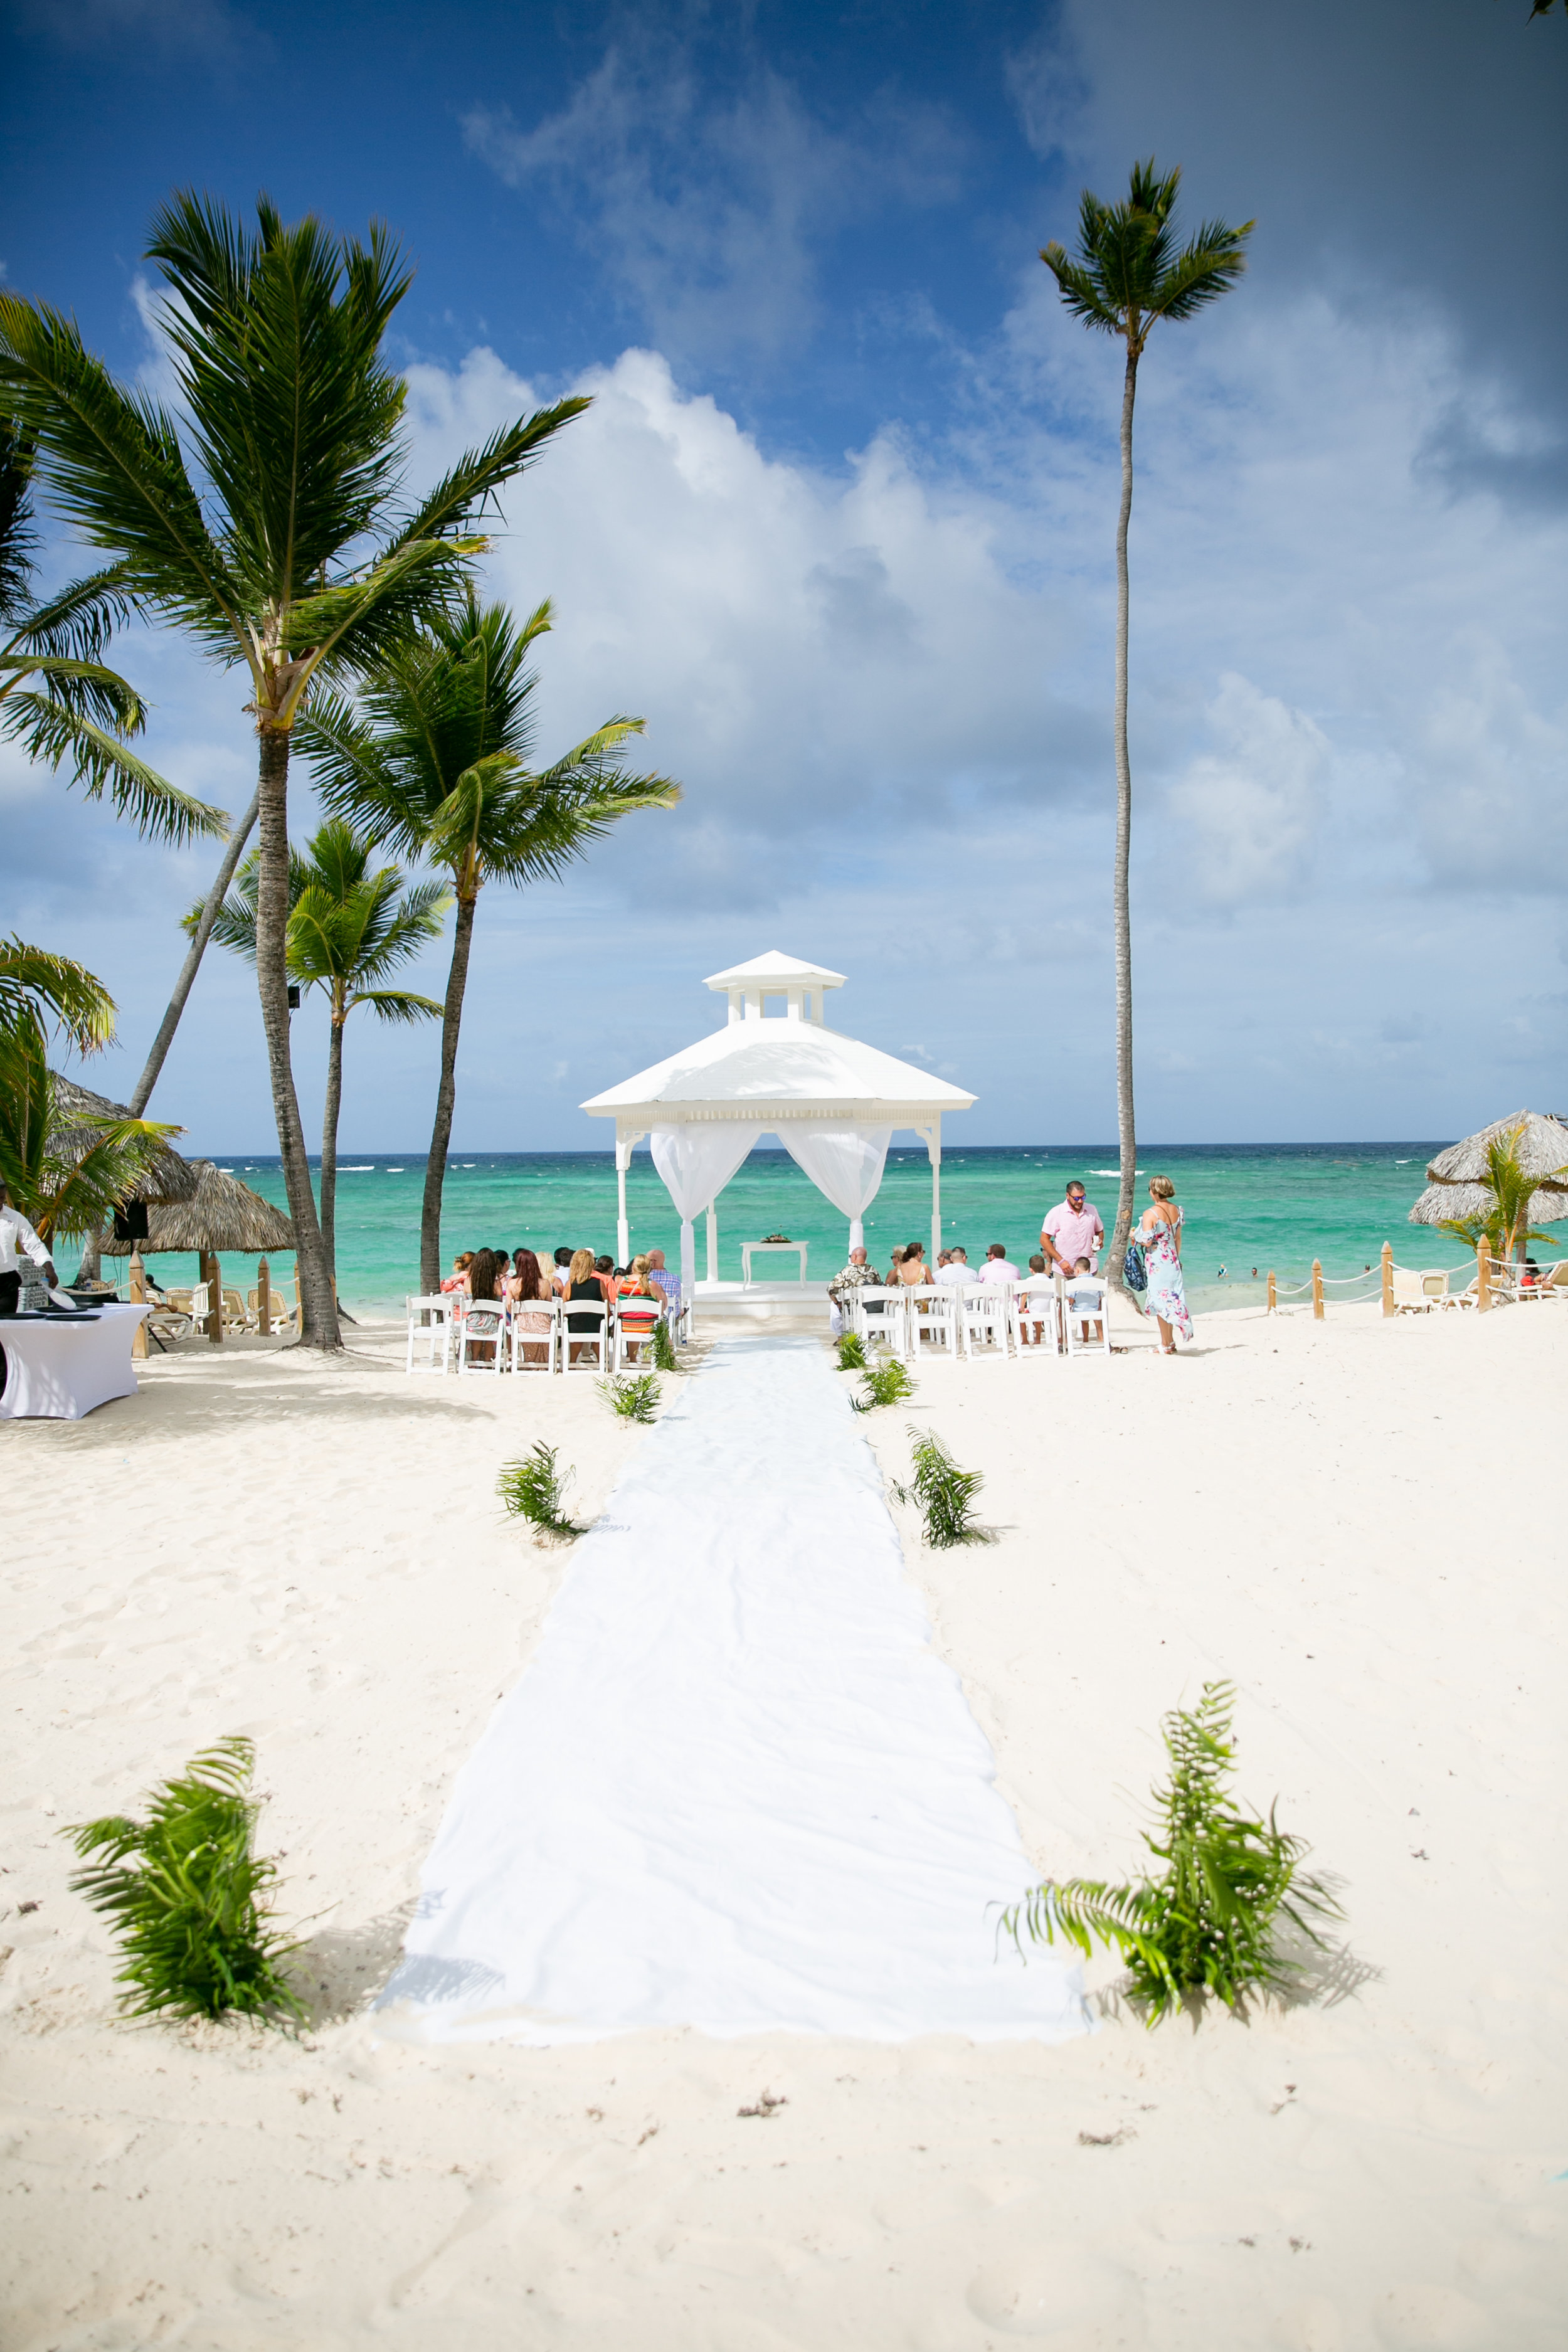 Majestic Colonial Punta Cana Destination Wedding - Beach Gazebo